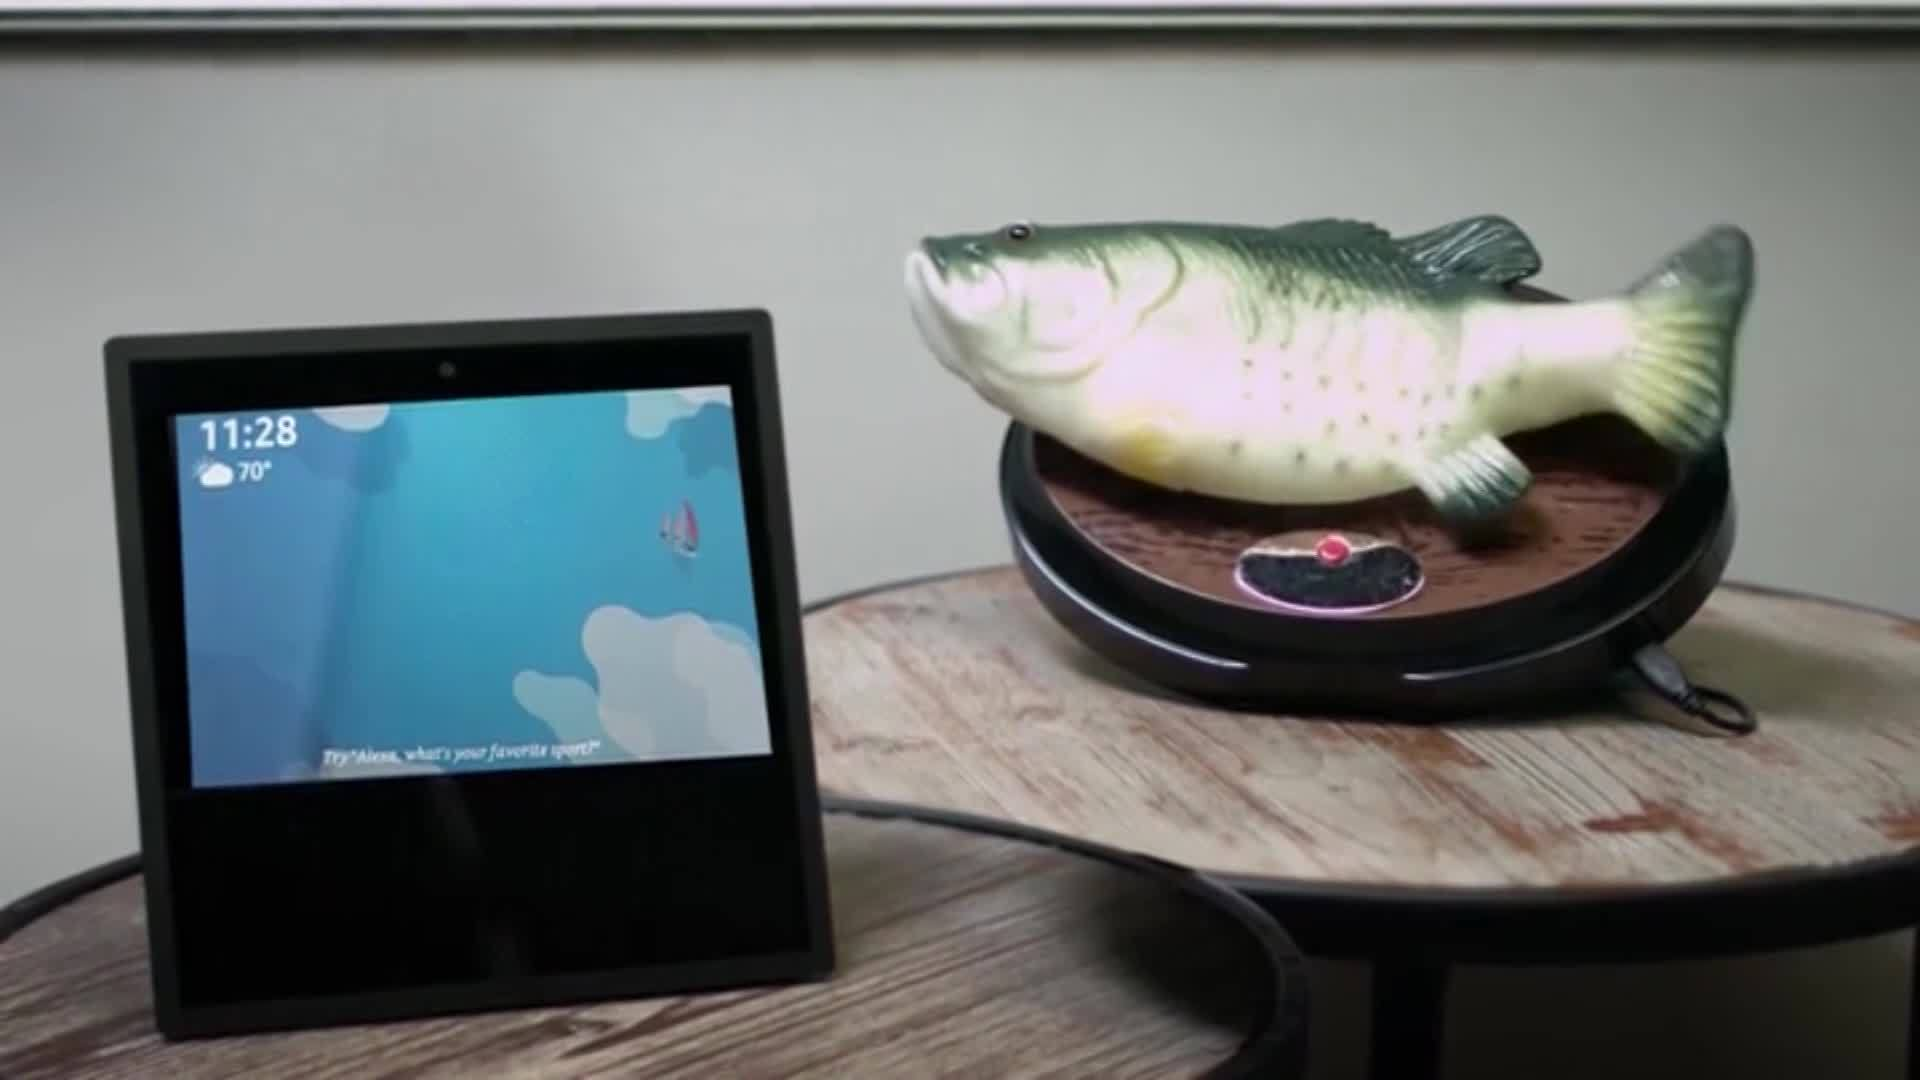 VIDEO: Big Mouth Billy Bass back on the market, can now connect to Alexa